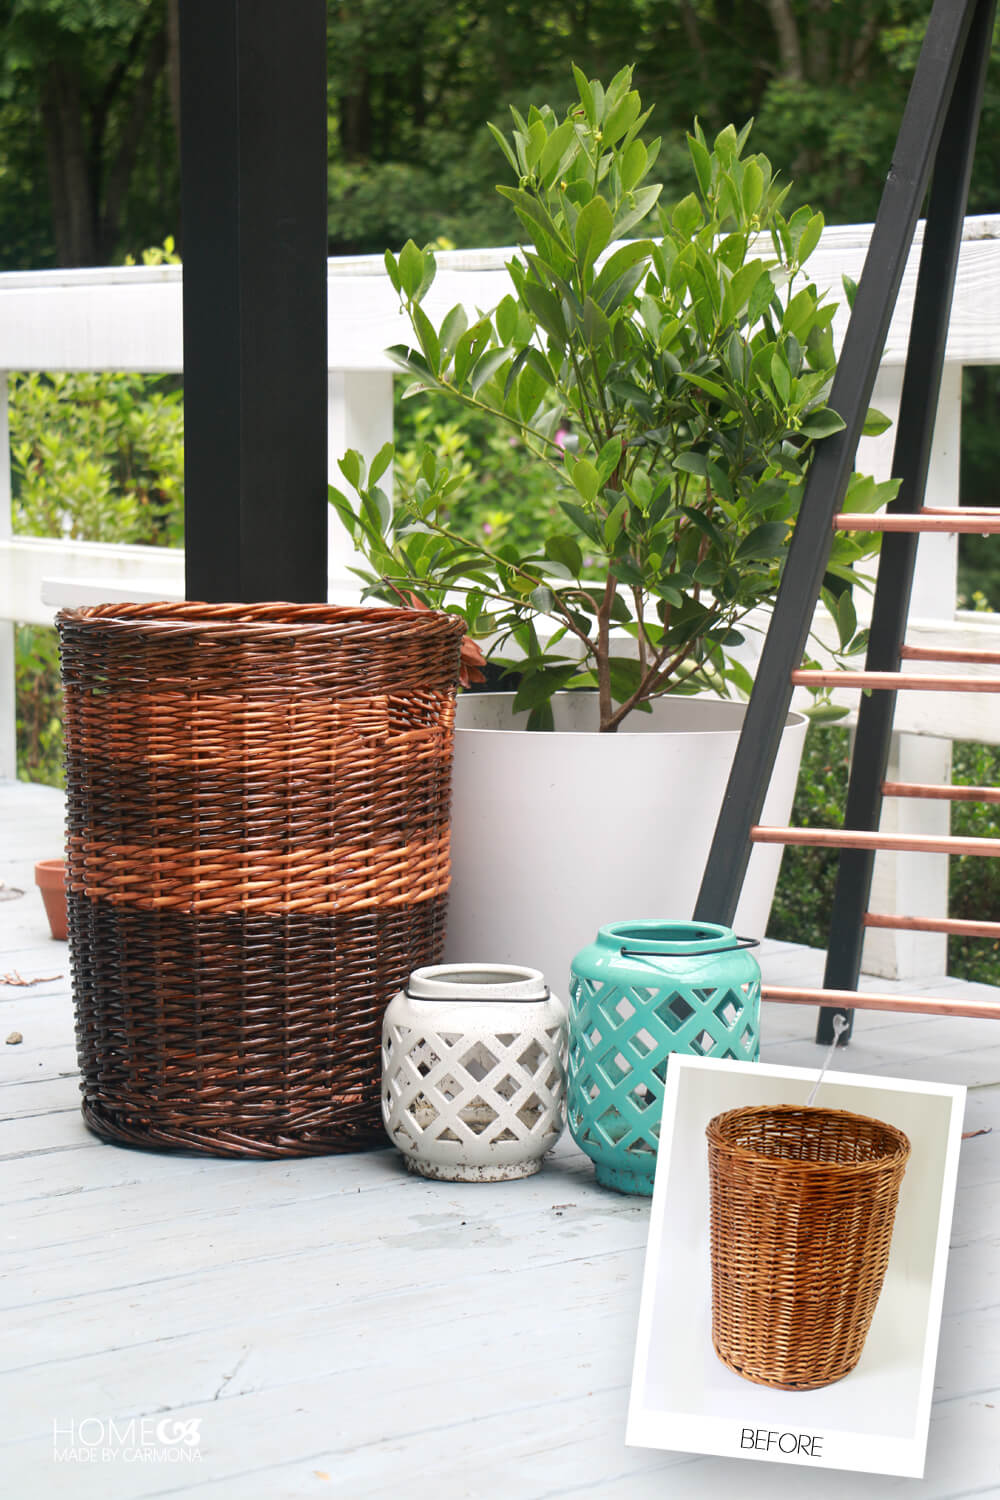 Basket Makeover - Stained Stripes